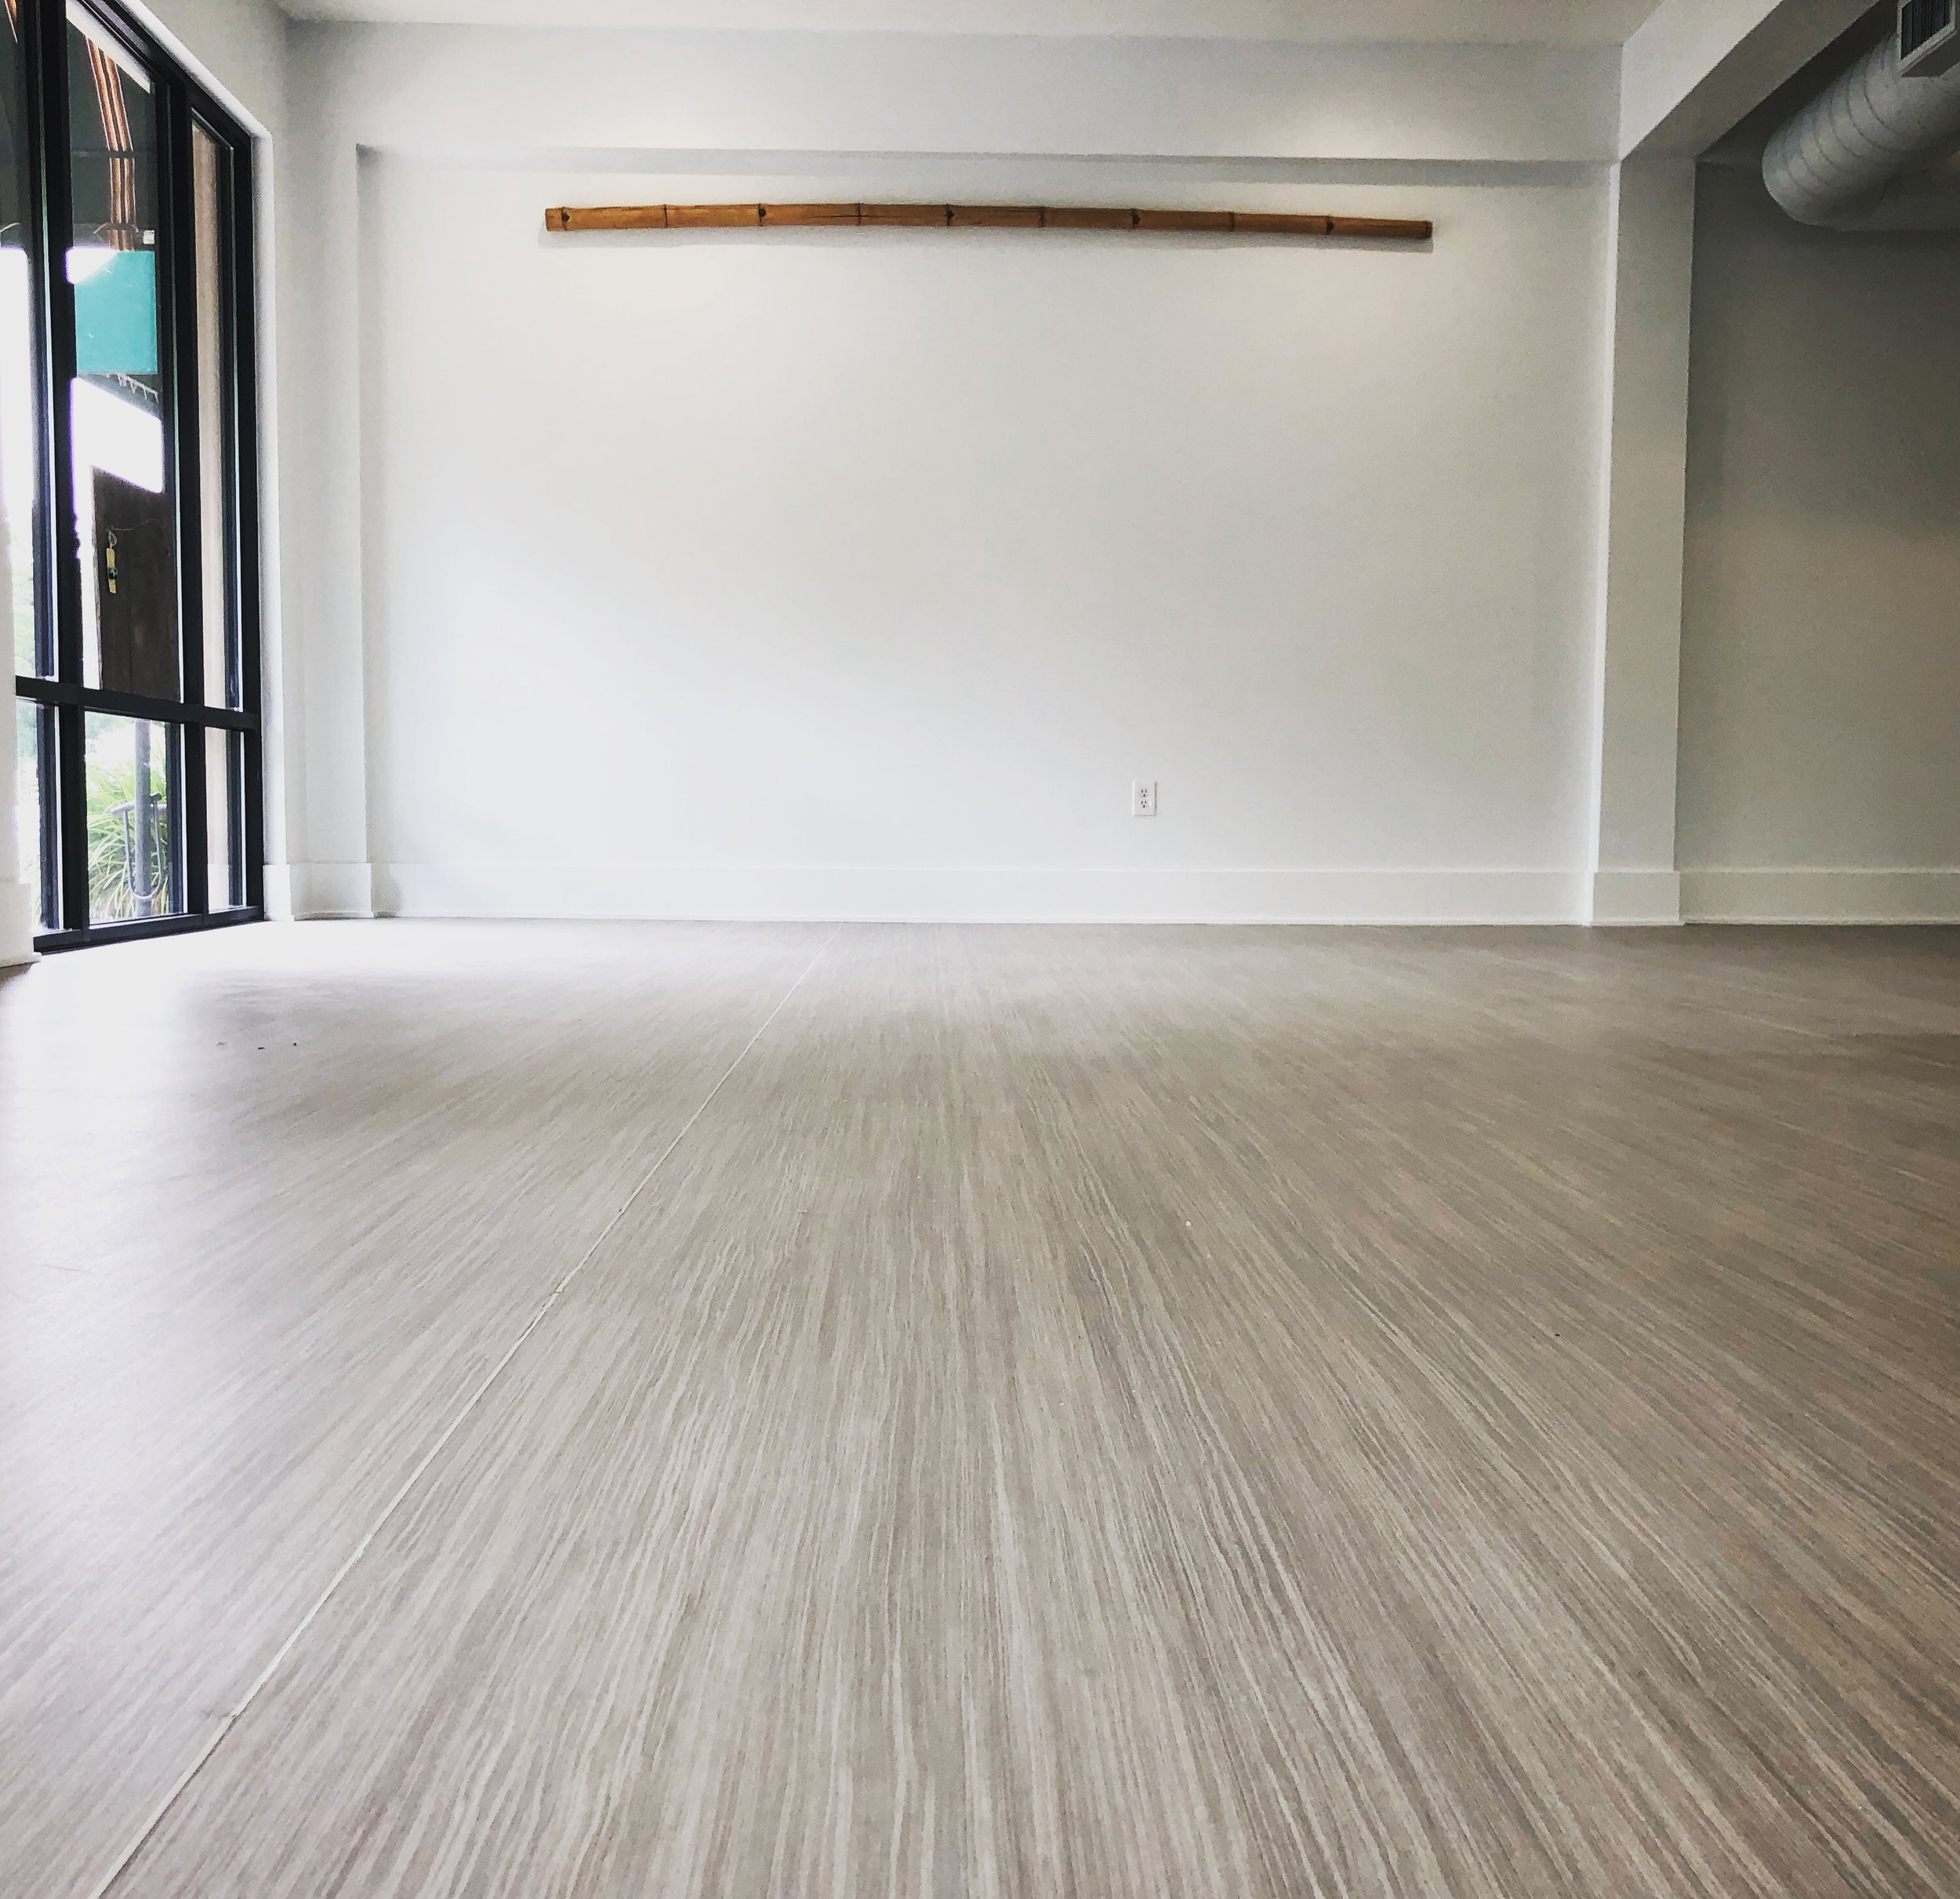 Exposition Studio - 2415 Exposition Blvd | Austin, TX 78703512-792-9060 | info@breathandbodyyoga.comThe studio is open 7 days a week, 364 days a year (closed Christmas).